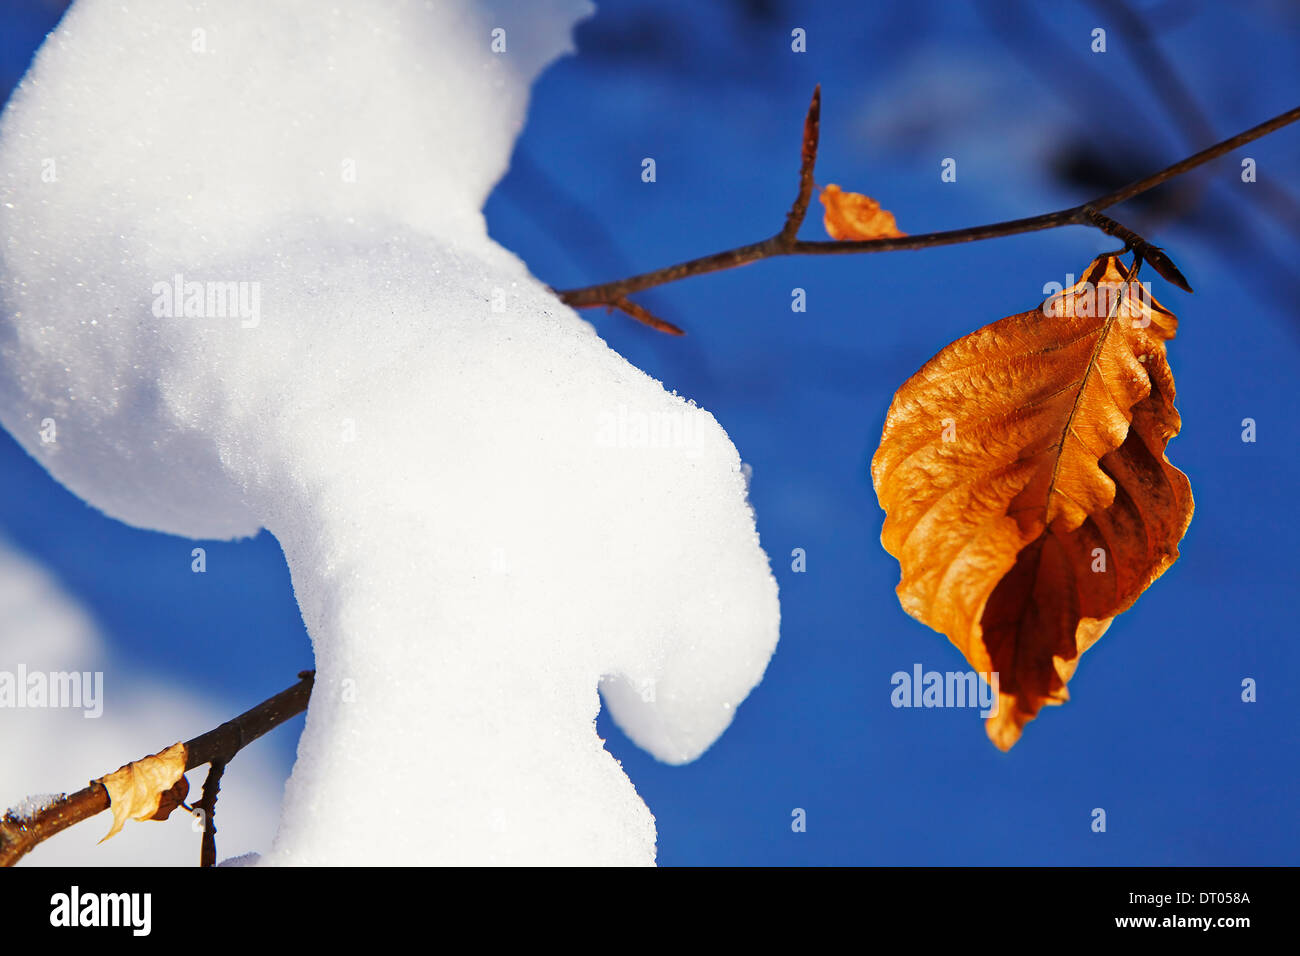 Branches of a young beech tree in deep snow, in the Haldon Hills near Mamhead, near Exeter, Devon, Great Britain. - Stock Image